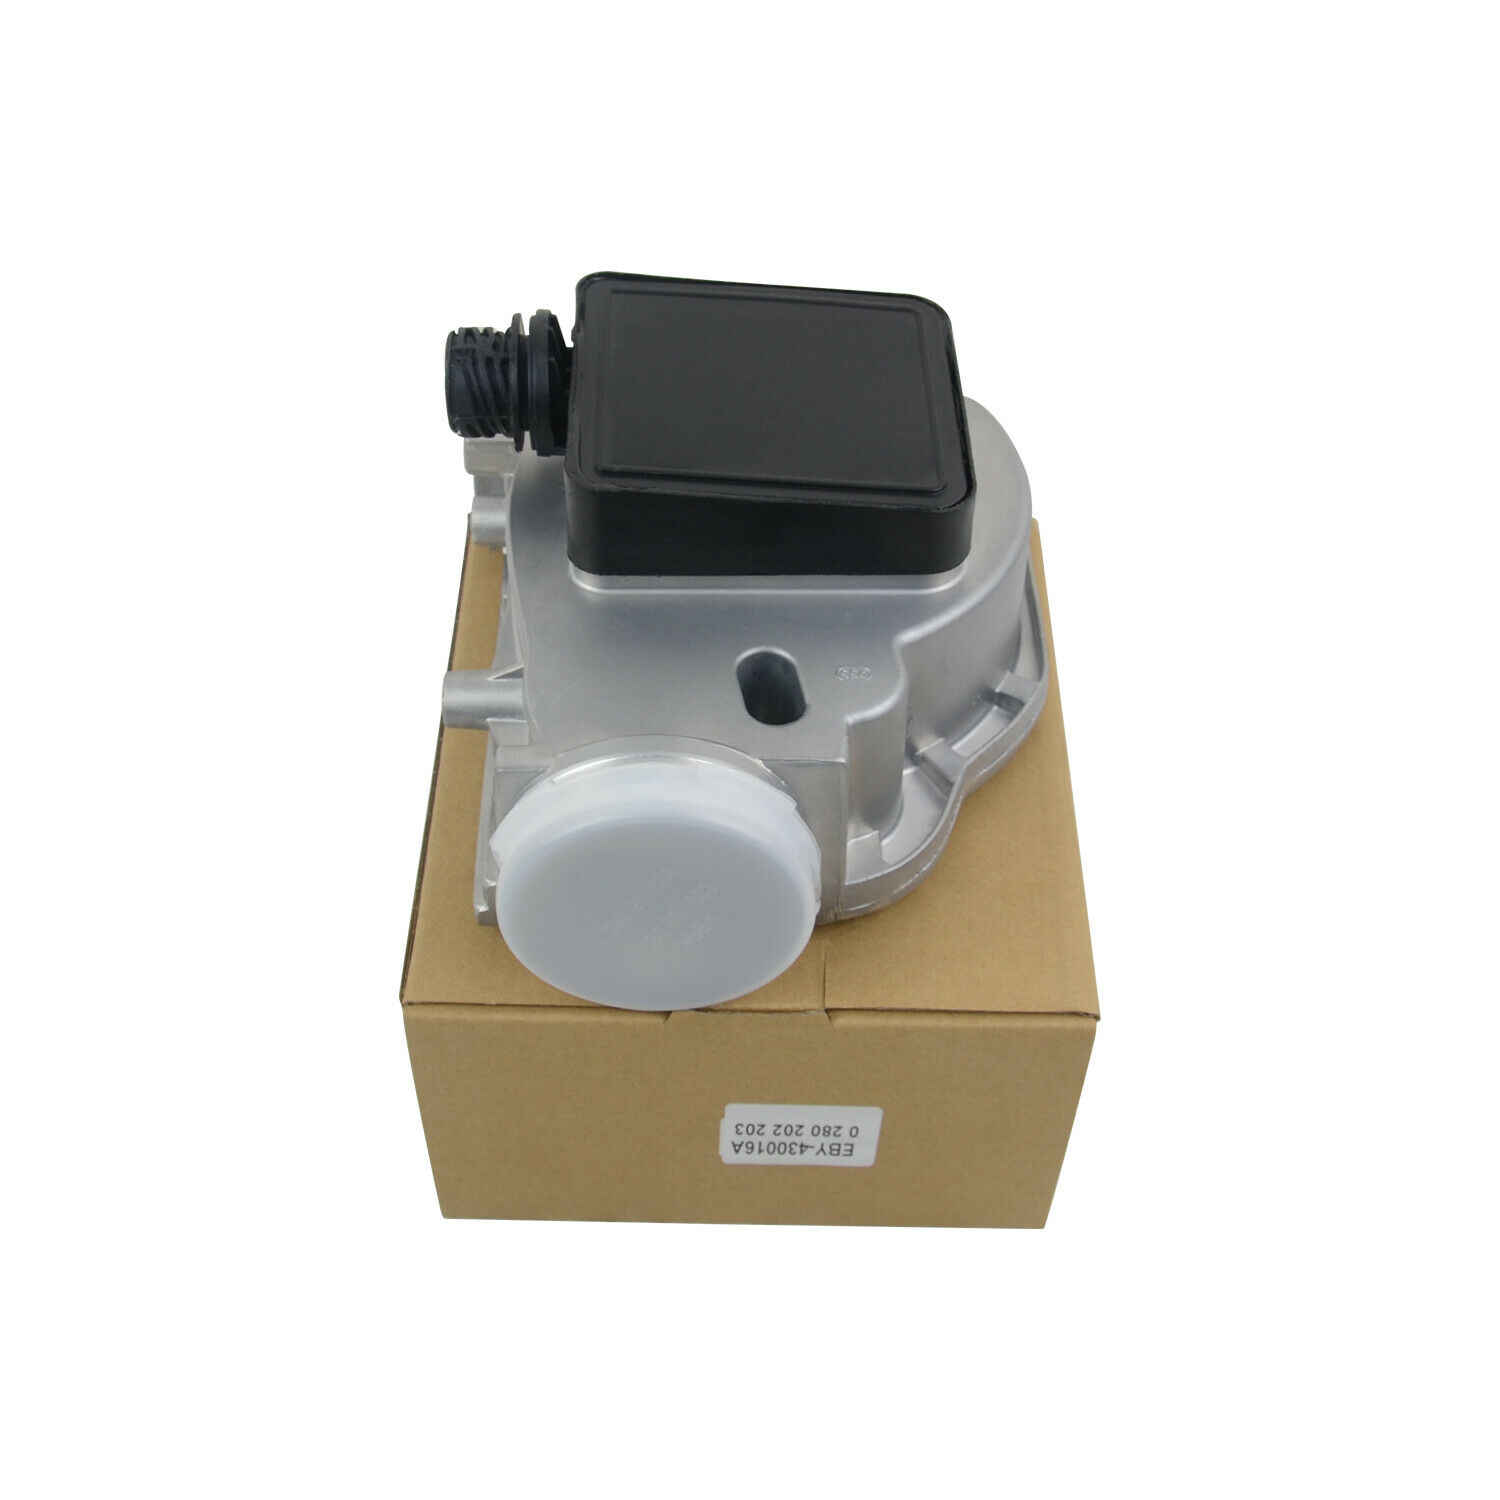 AP03 0280202203 MAF Mass Air Flow SENSOR Meter M40 M43 M42 สำหรับ BMW E30 E34 E36 318i 518i 1.8L